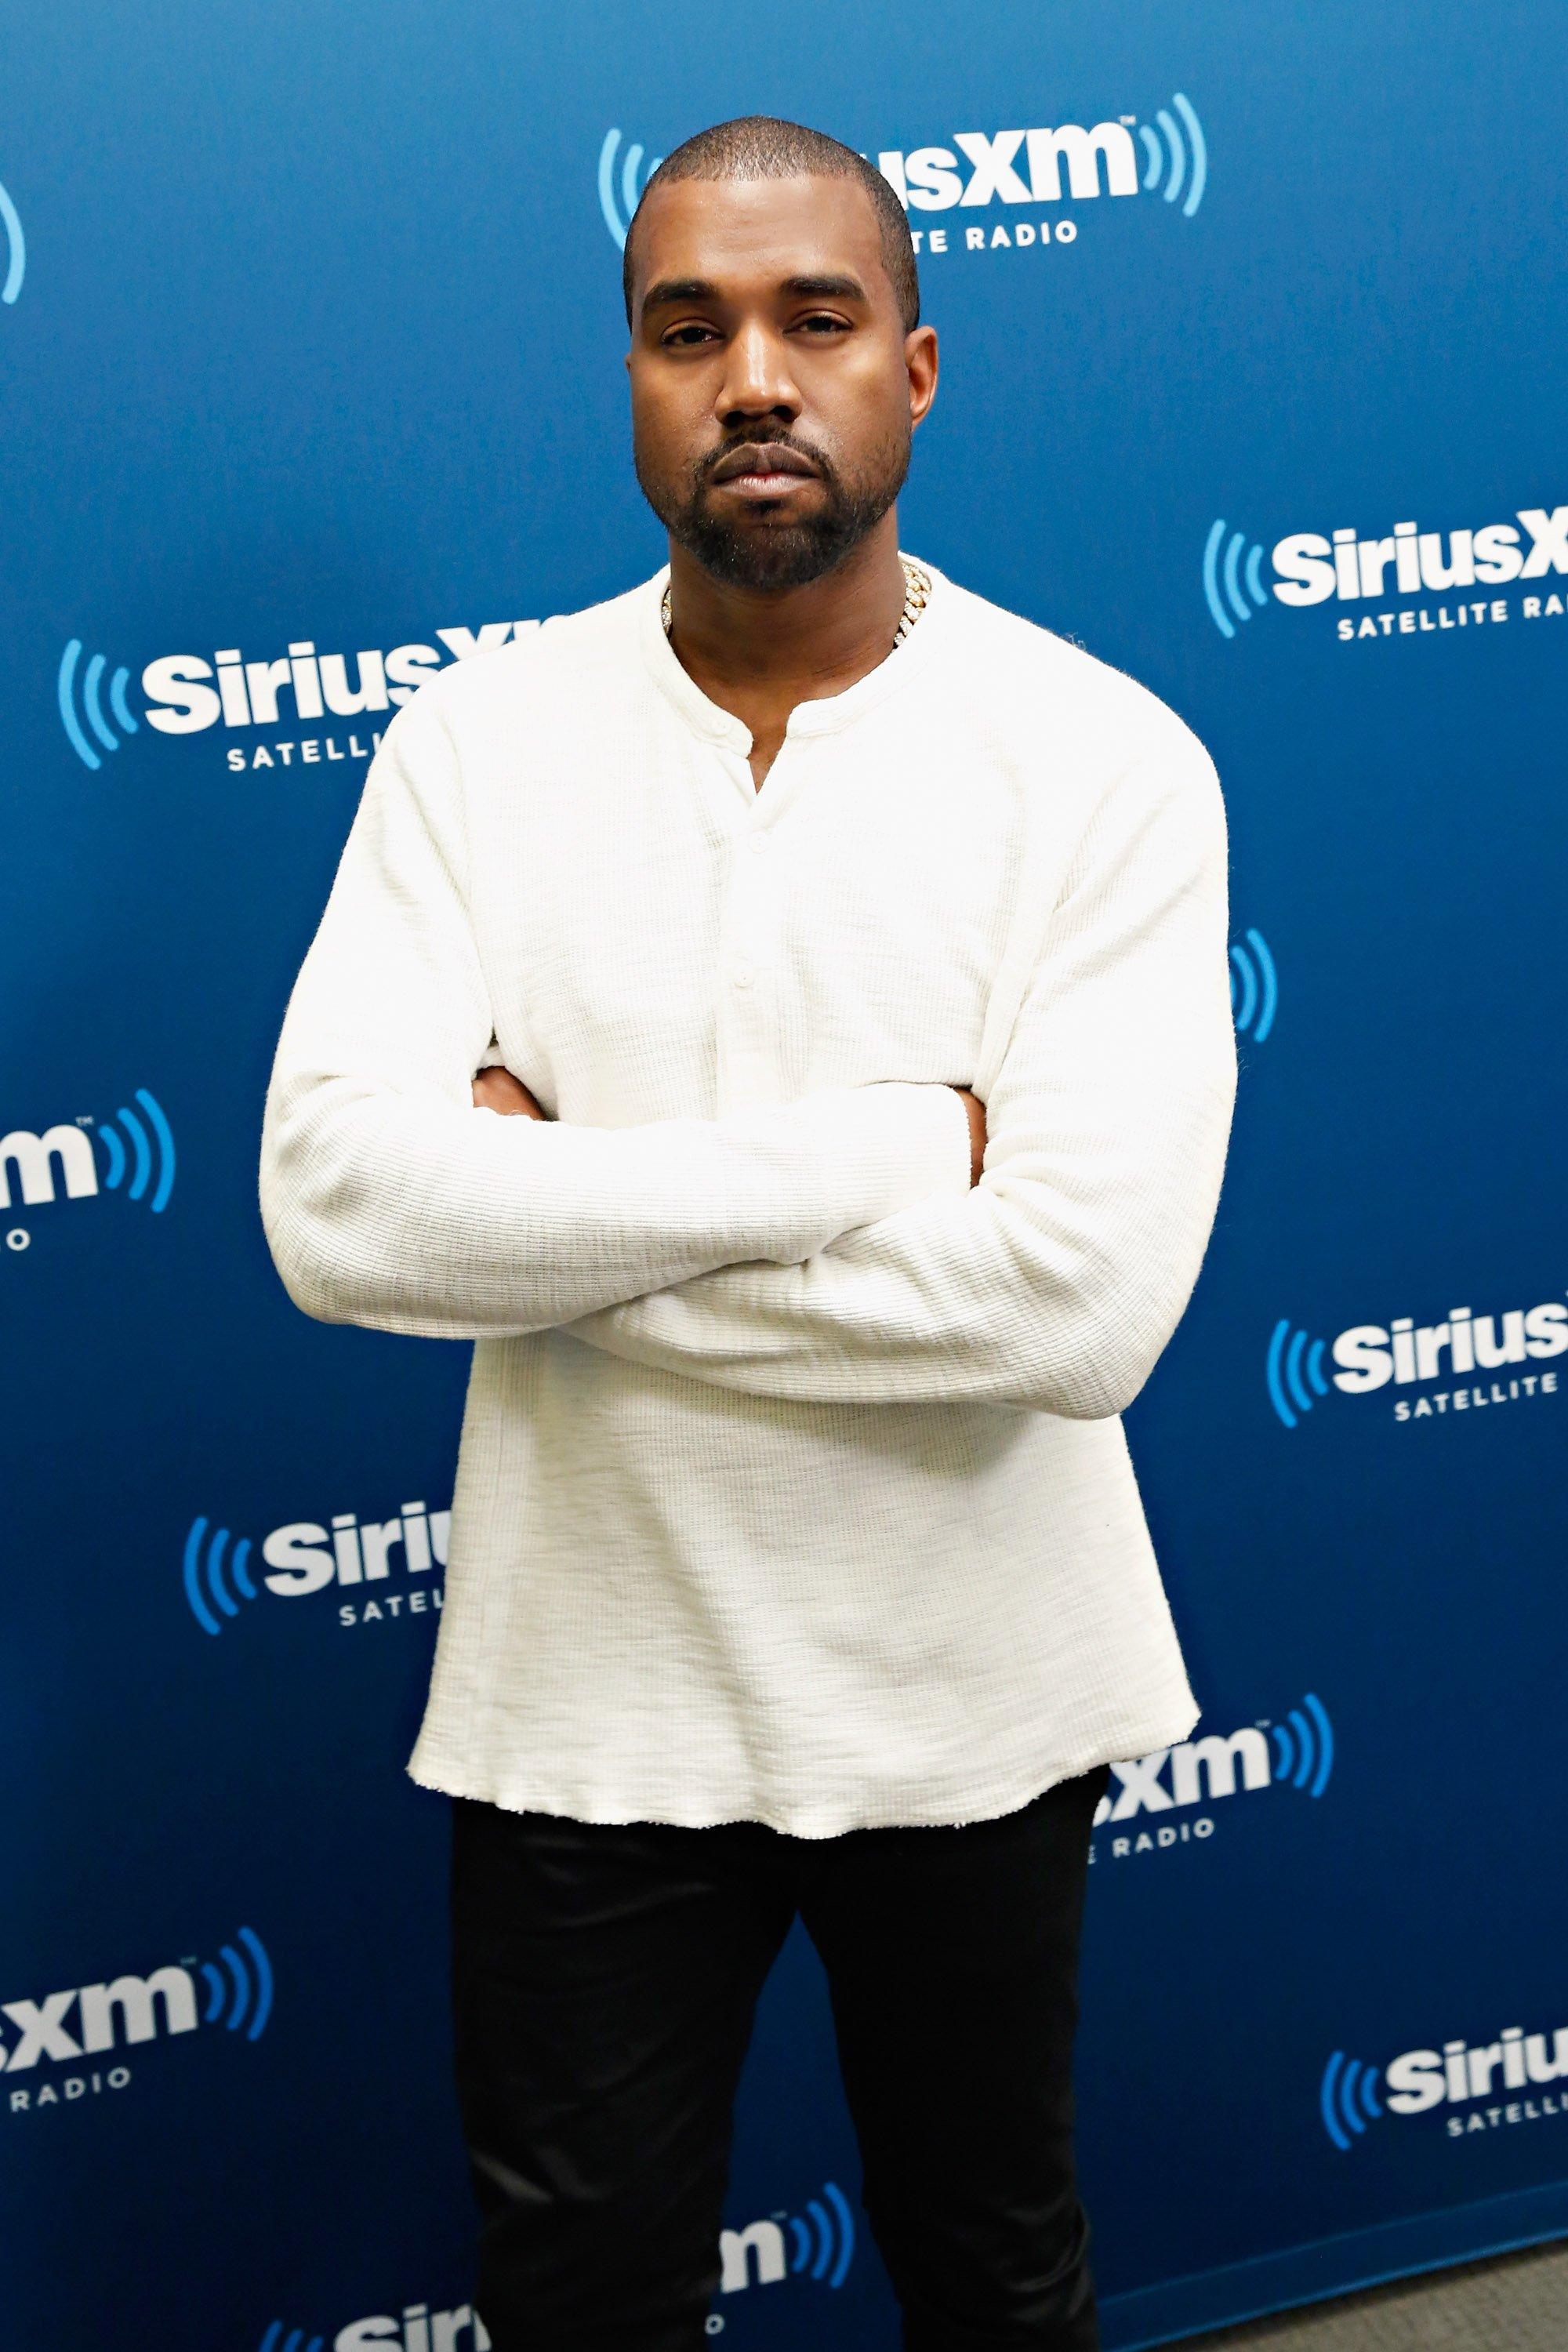 Kanye West at the SiriusXM Studios in 2013. | Source: Getty Images